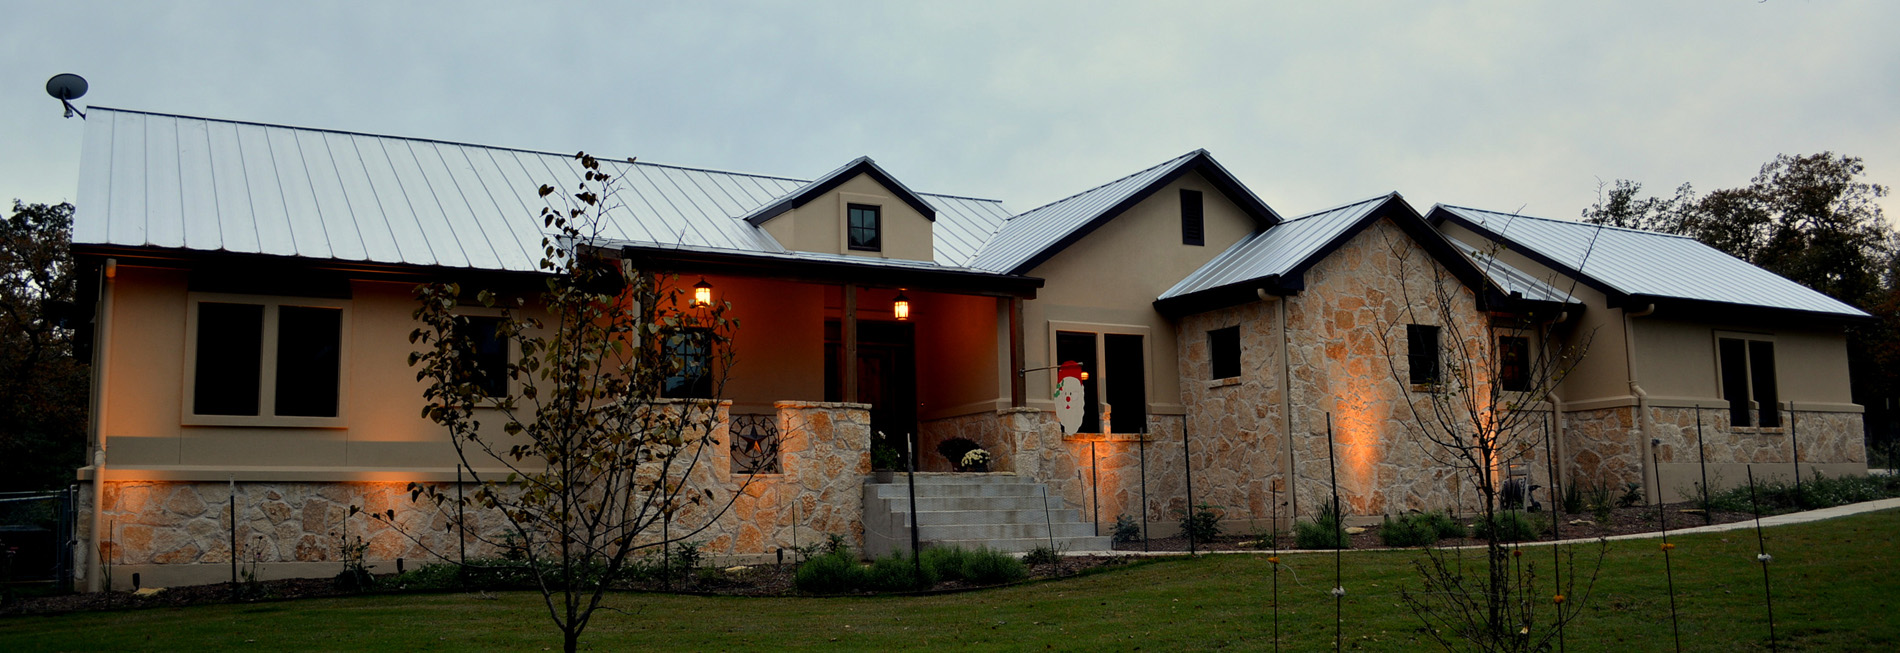 Custom home builders bastrop tx avie home for Home builders bastrop tx